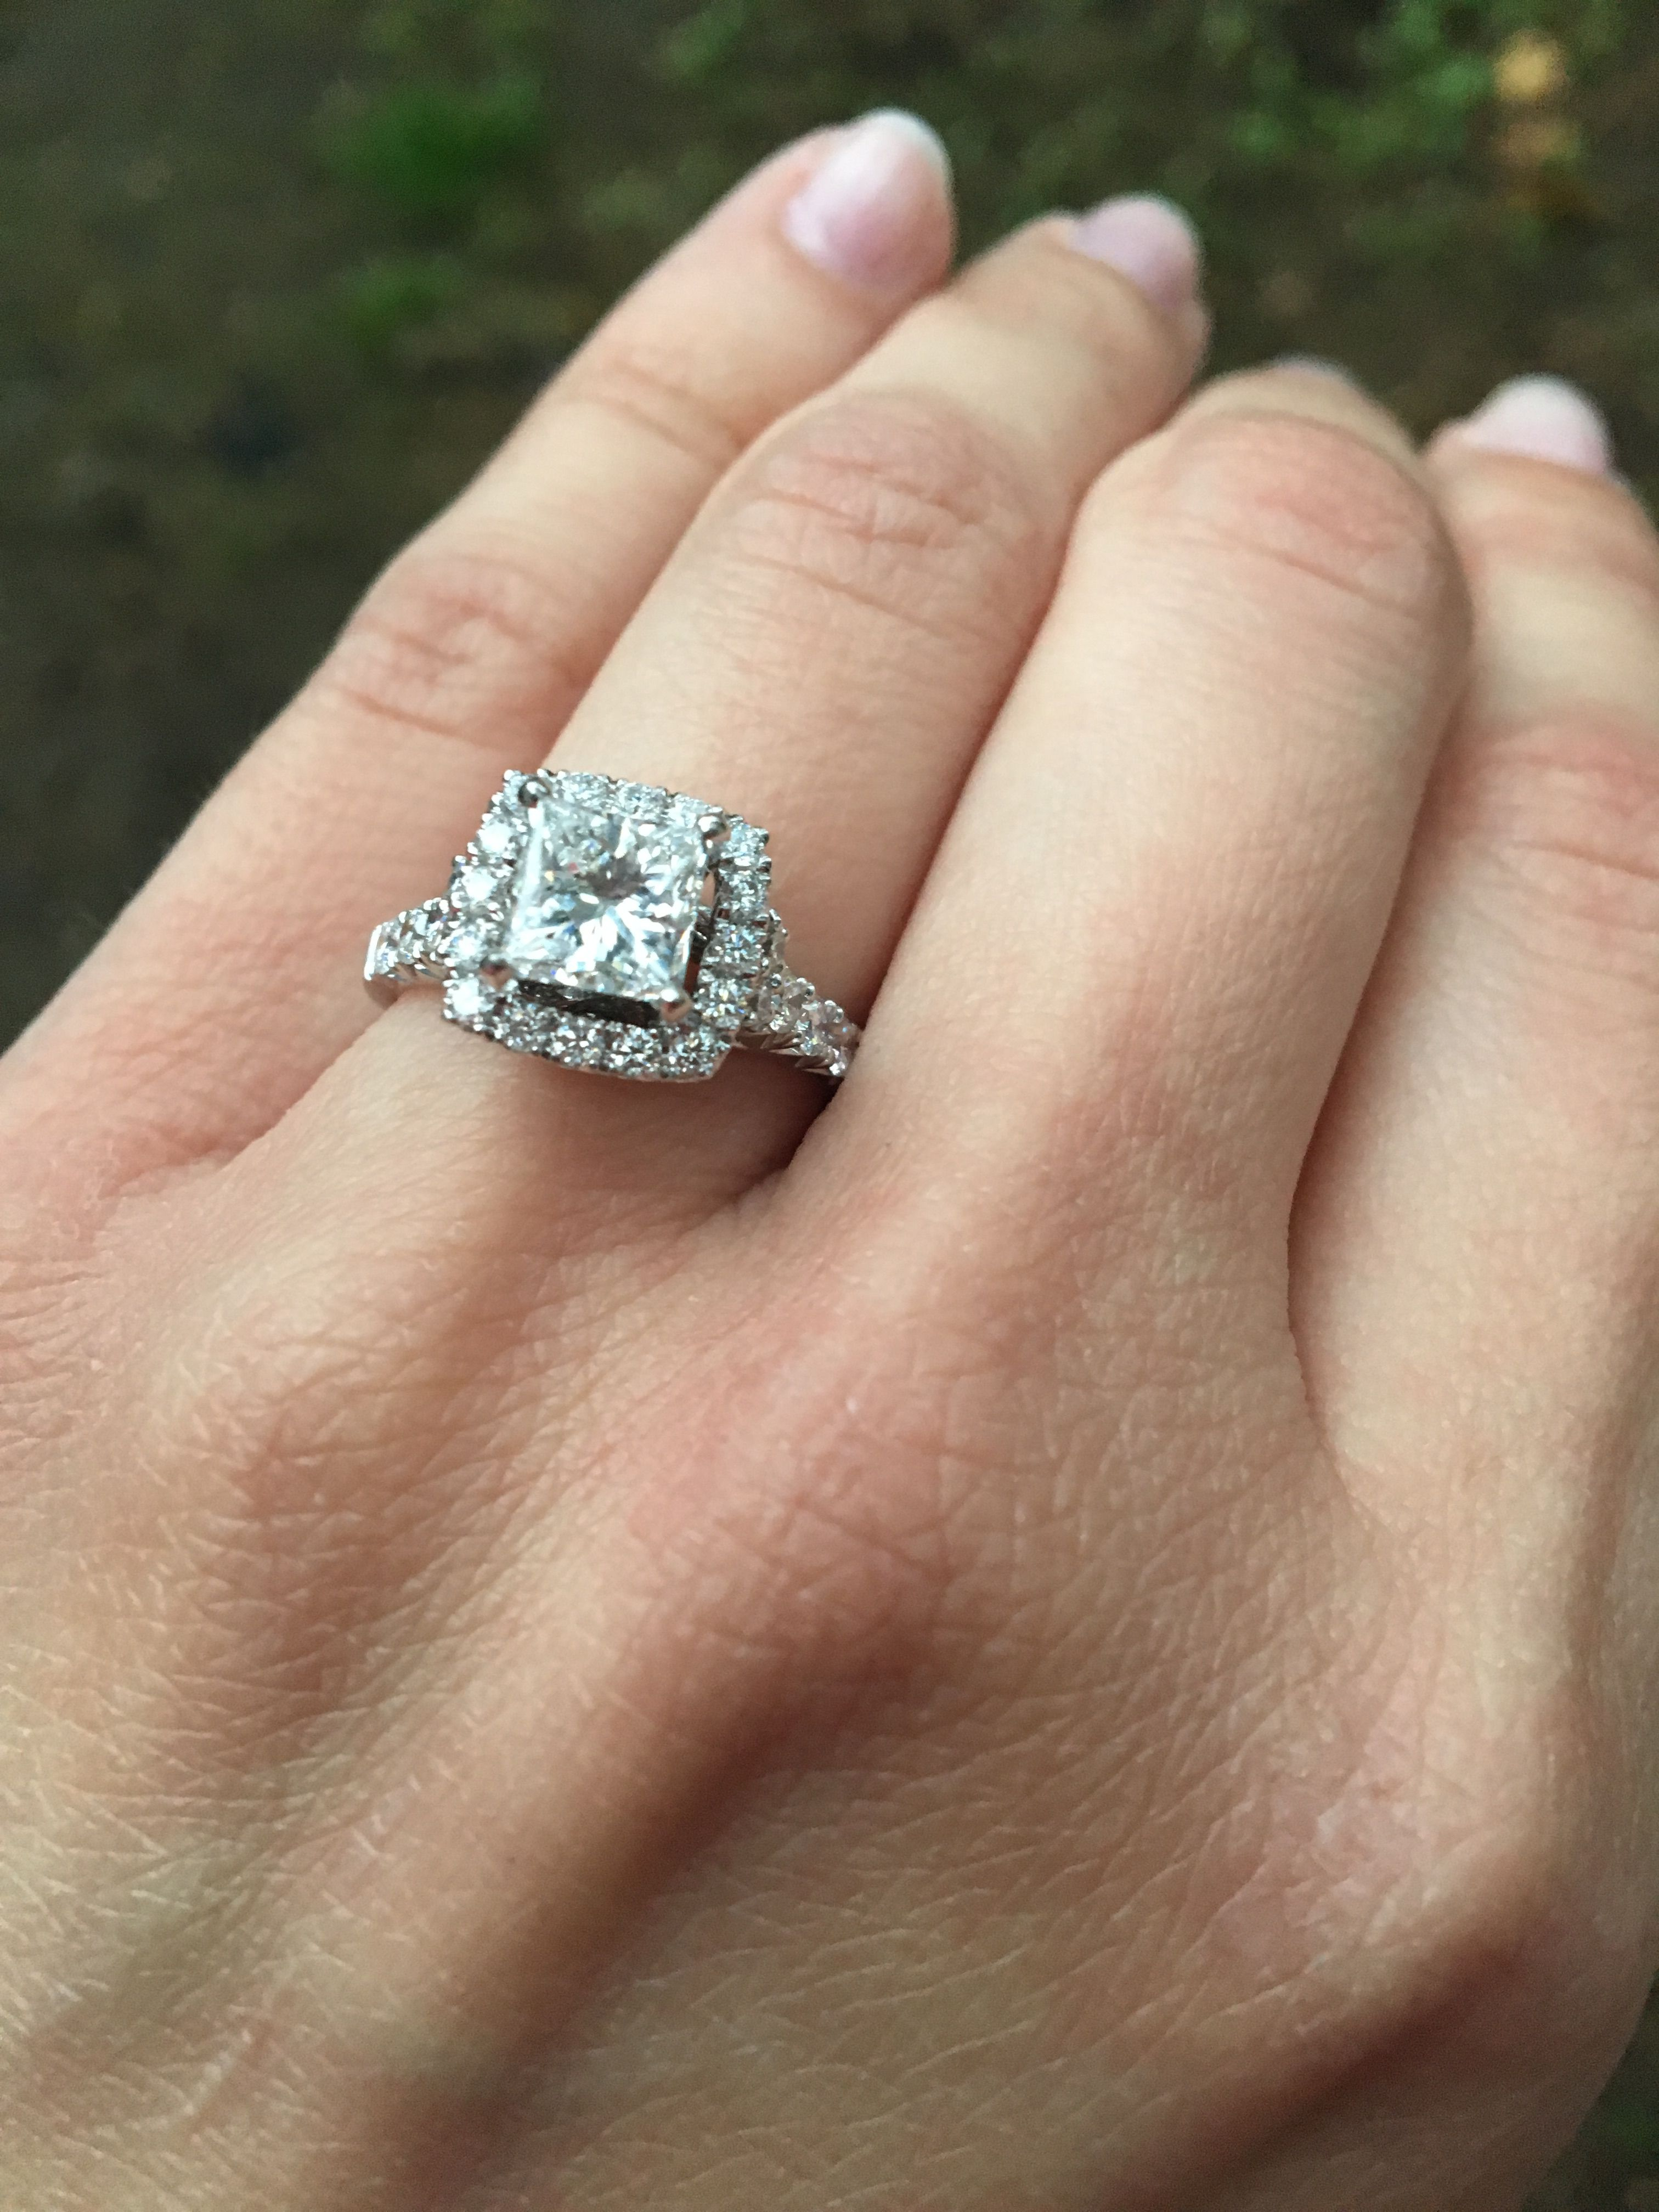 Jane, our commercial specialist, recently got engaged! We